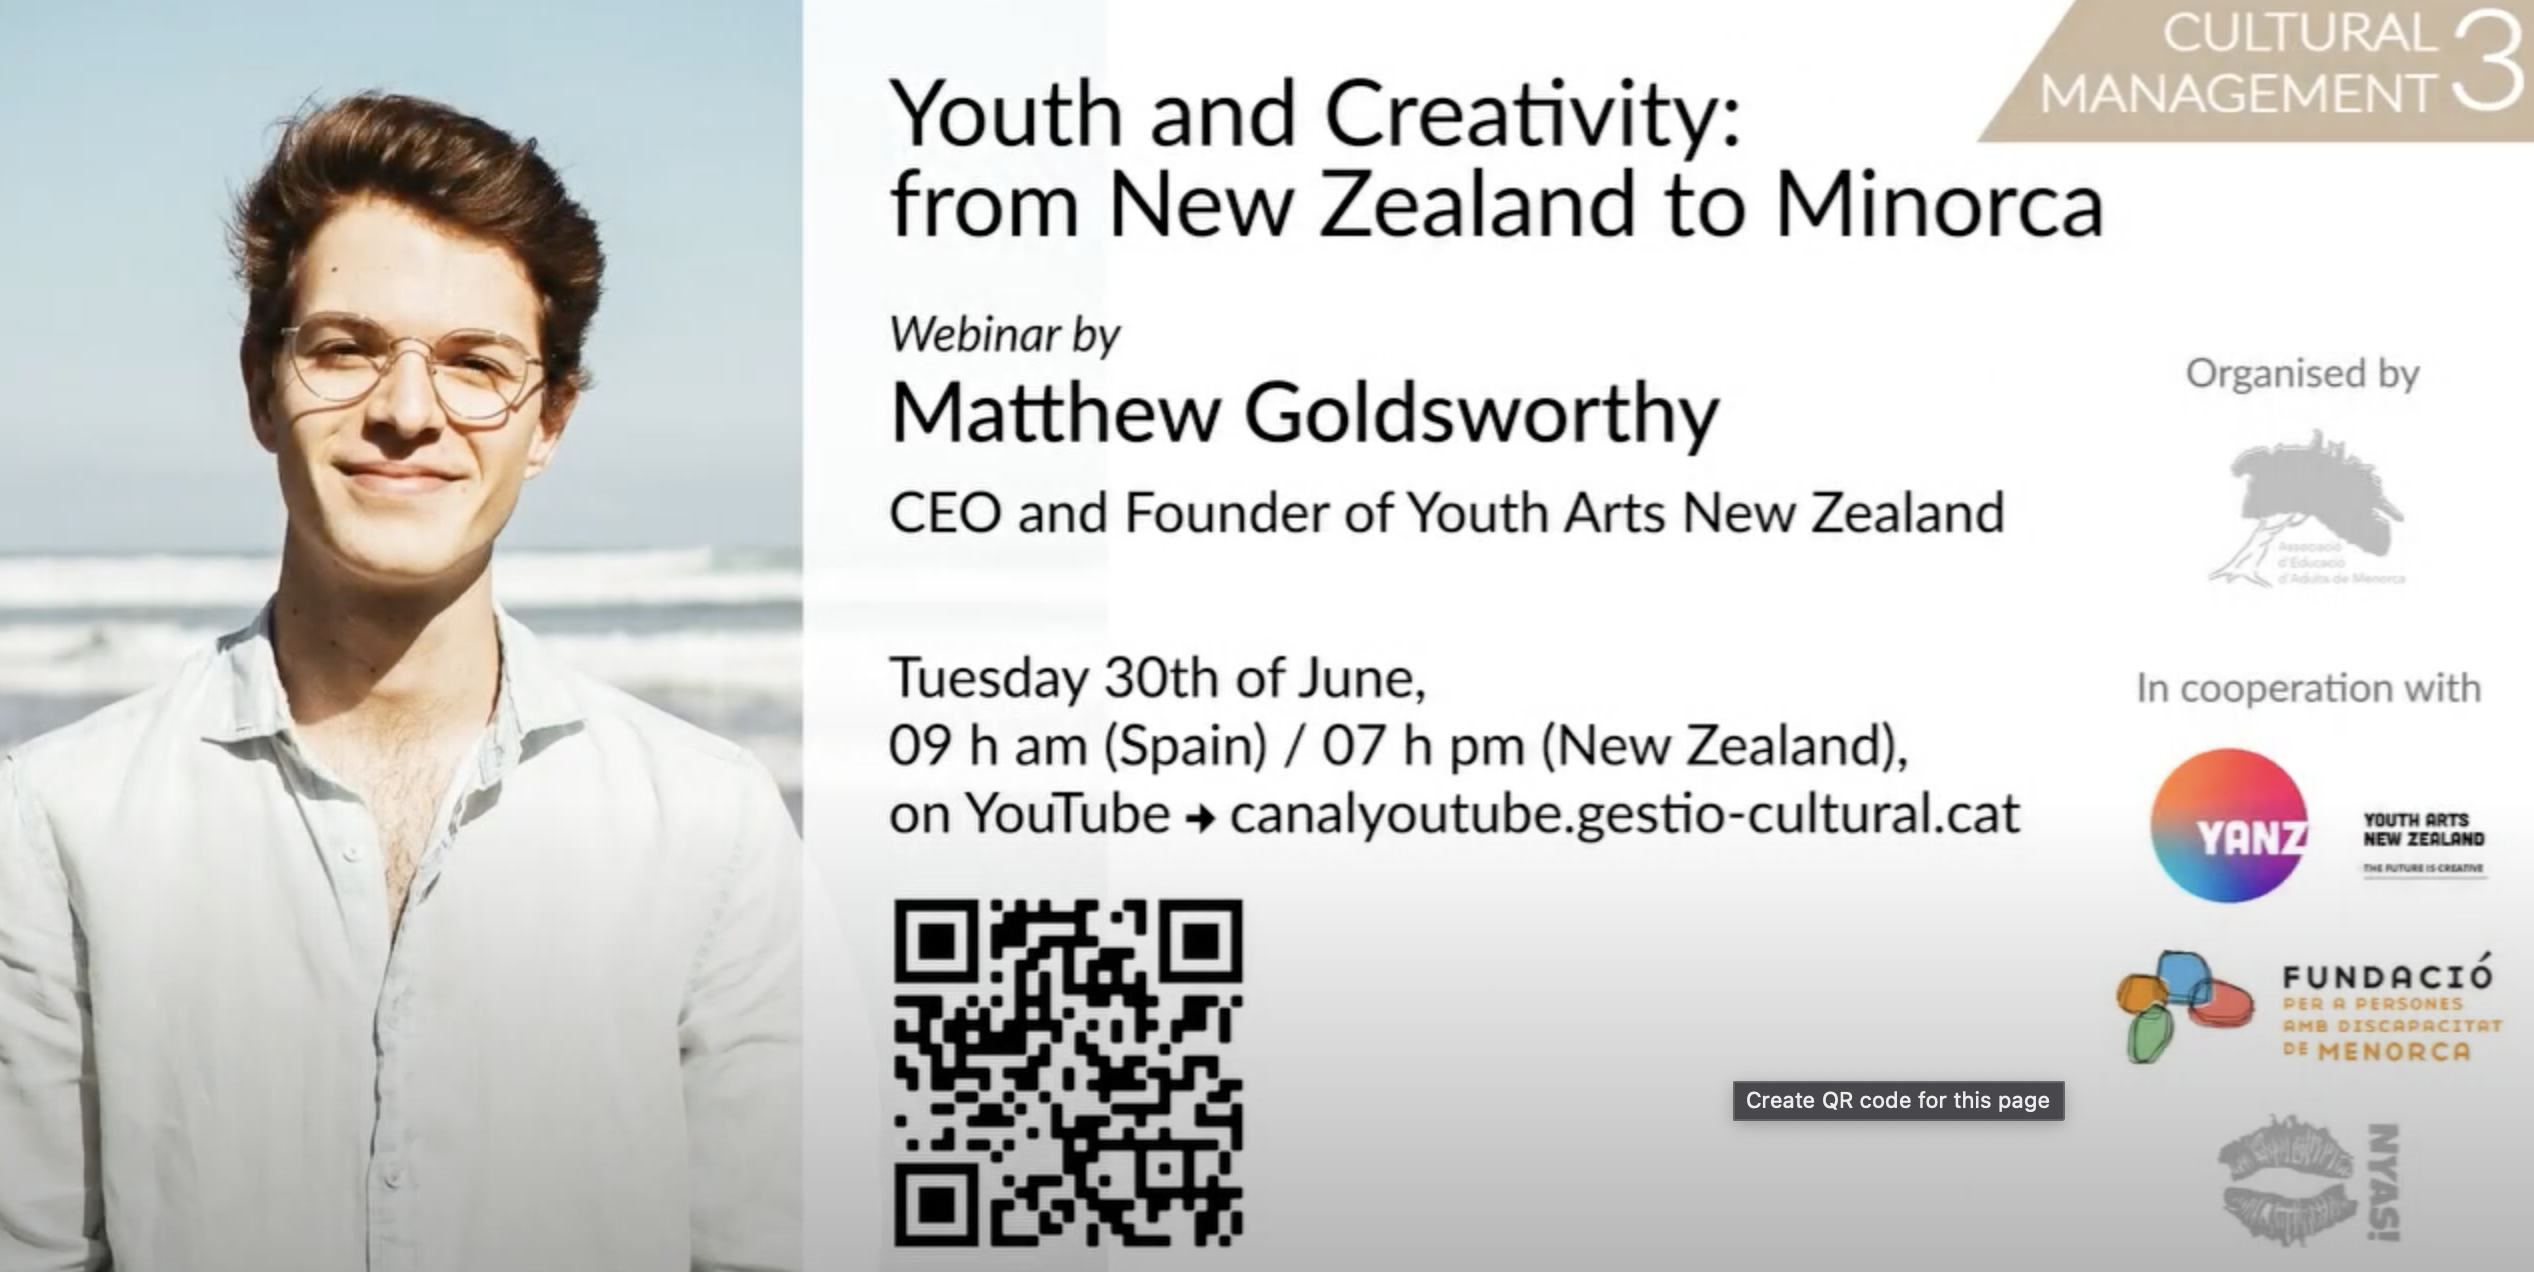 Youth and Creativity: from New Zealand to Minorca